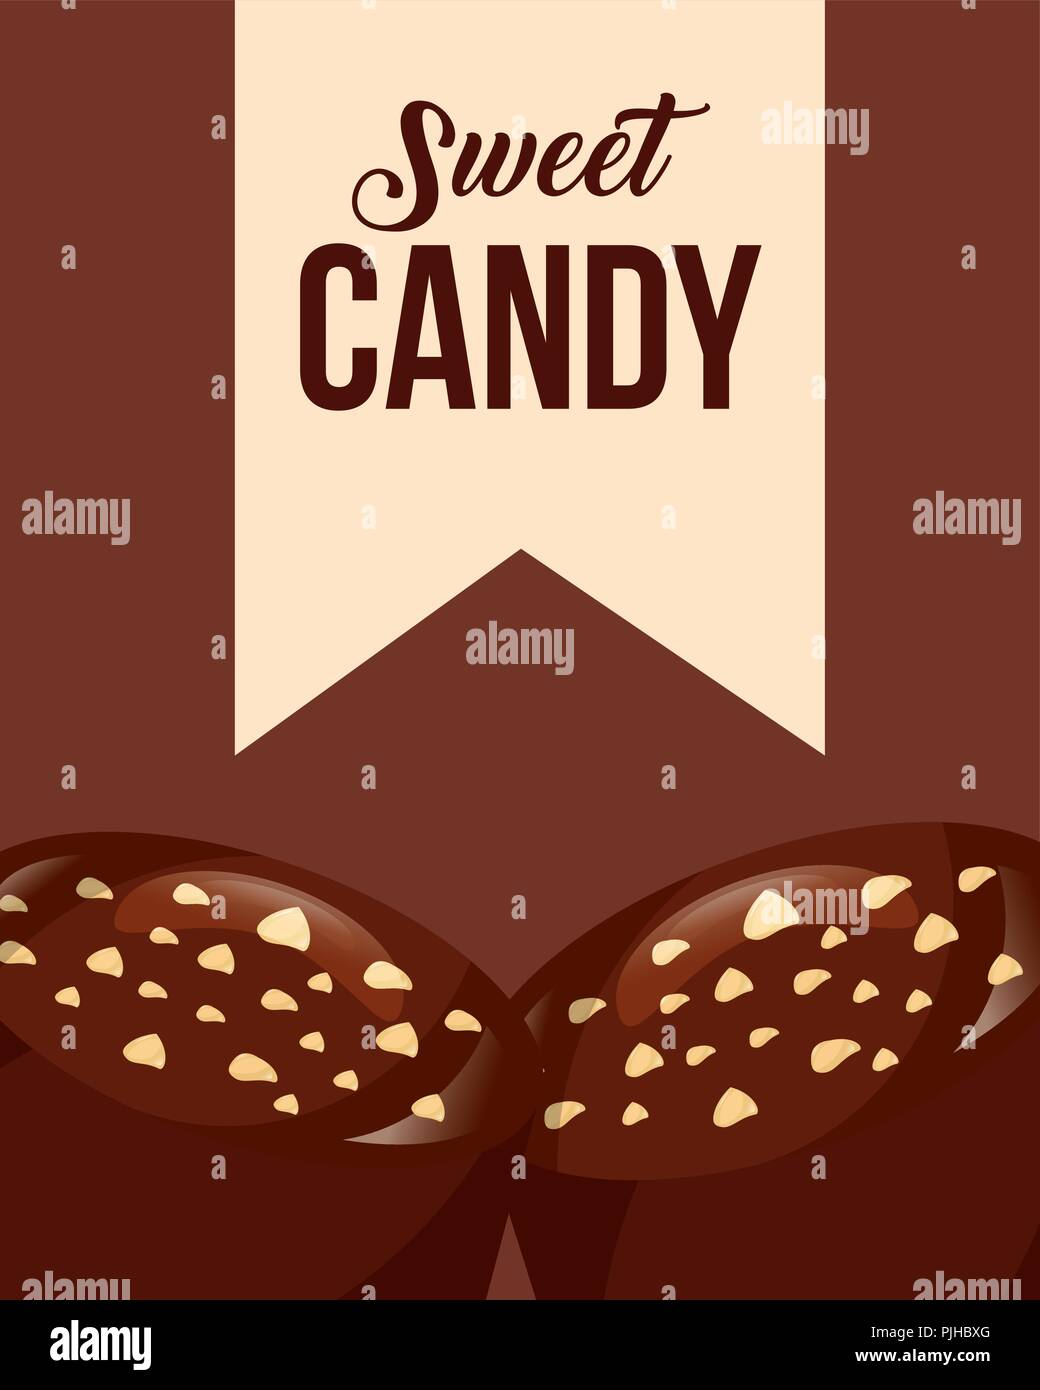 sweet candy card - Stock Vector